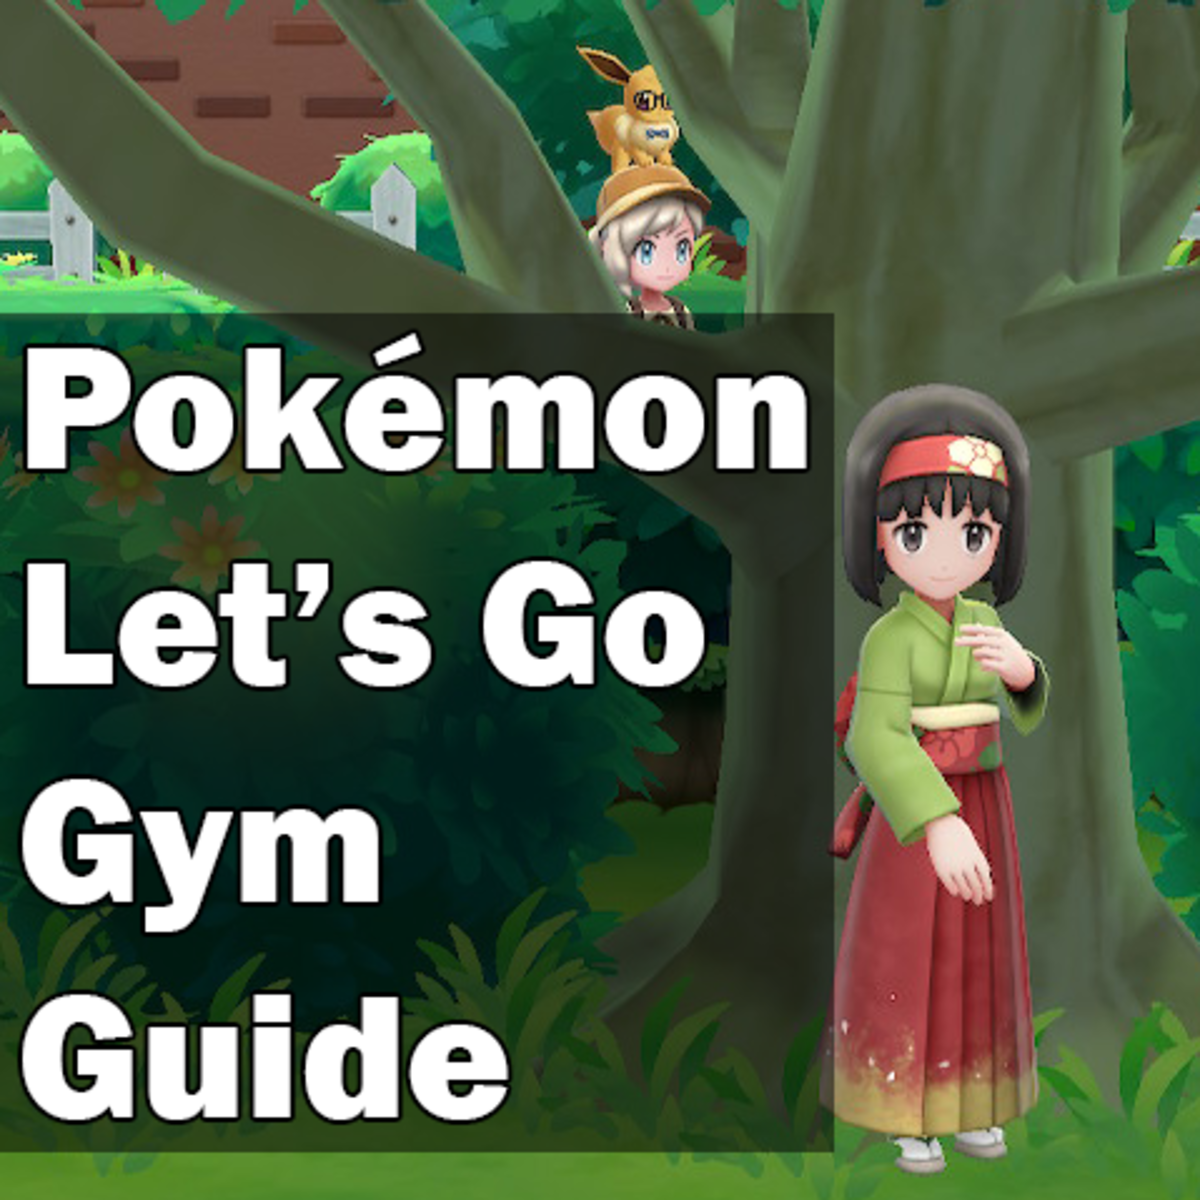 """Pokémon Let's Go"" Gym Guide"